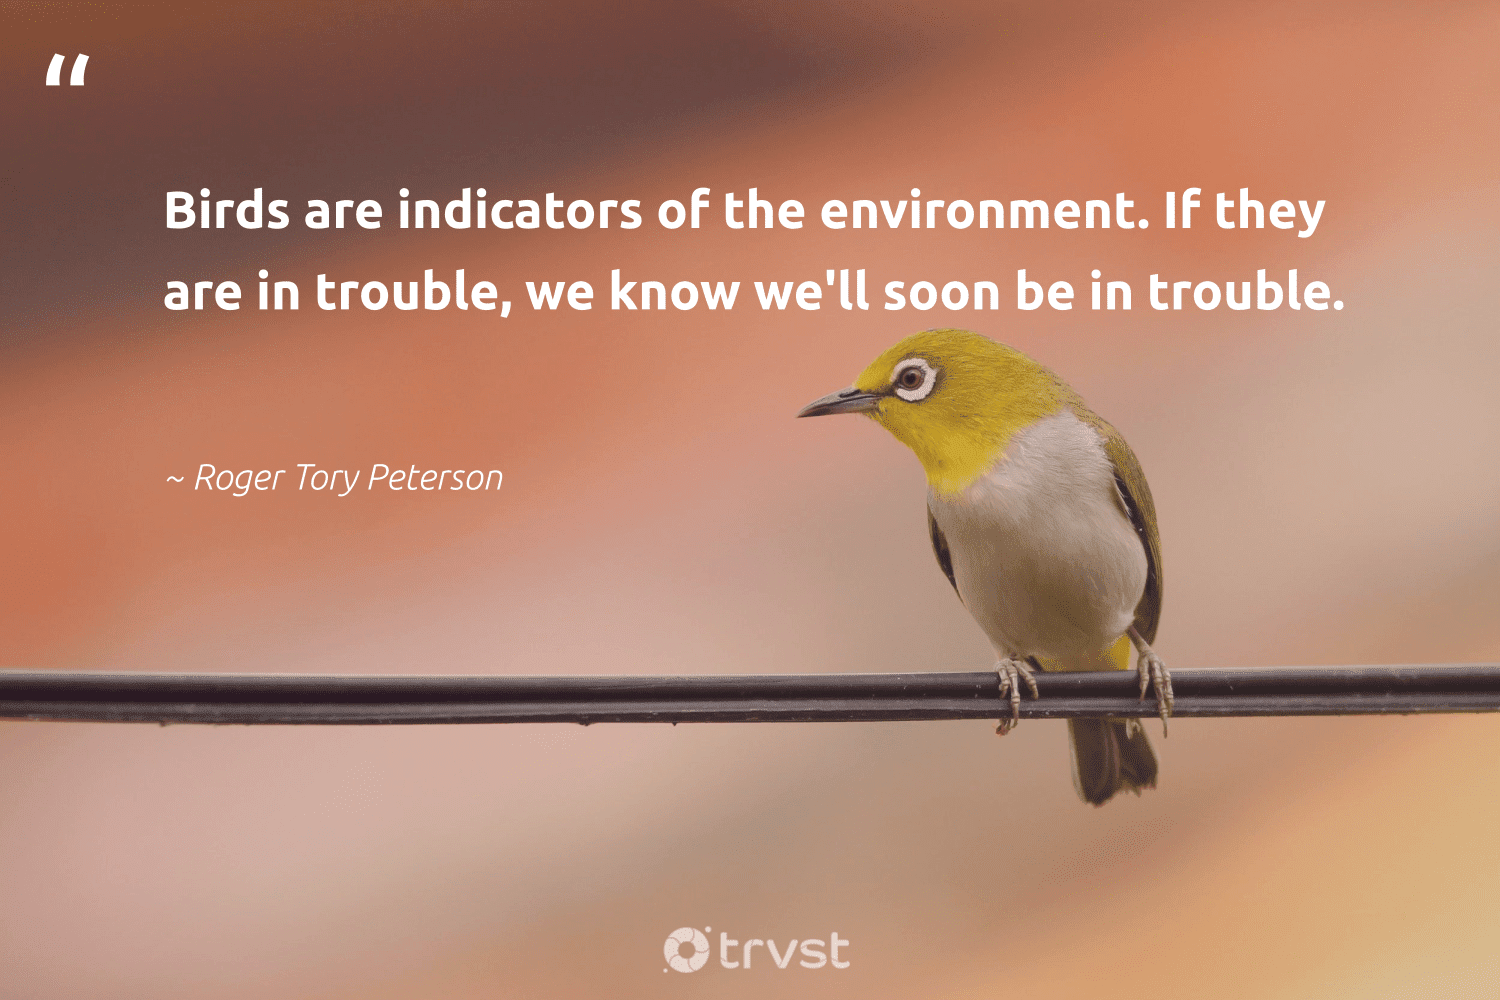 """""""Birds are indicators of the environment. If they are in trouble, we know we'll soon be in trouble.""""  - Roger Tory Peterson #trvst #quotes #environment #birds #earth #ecofriendly #changetheworld #nature #climatechange #impact #conservation #eco"""